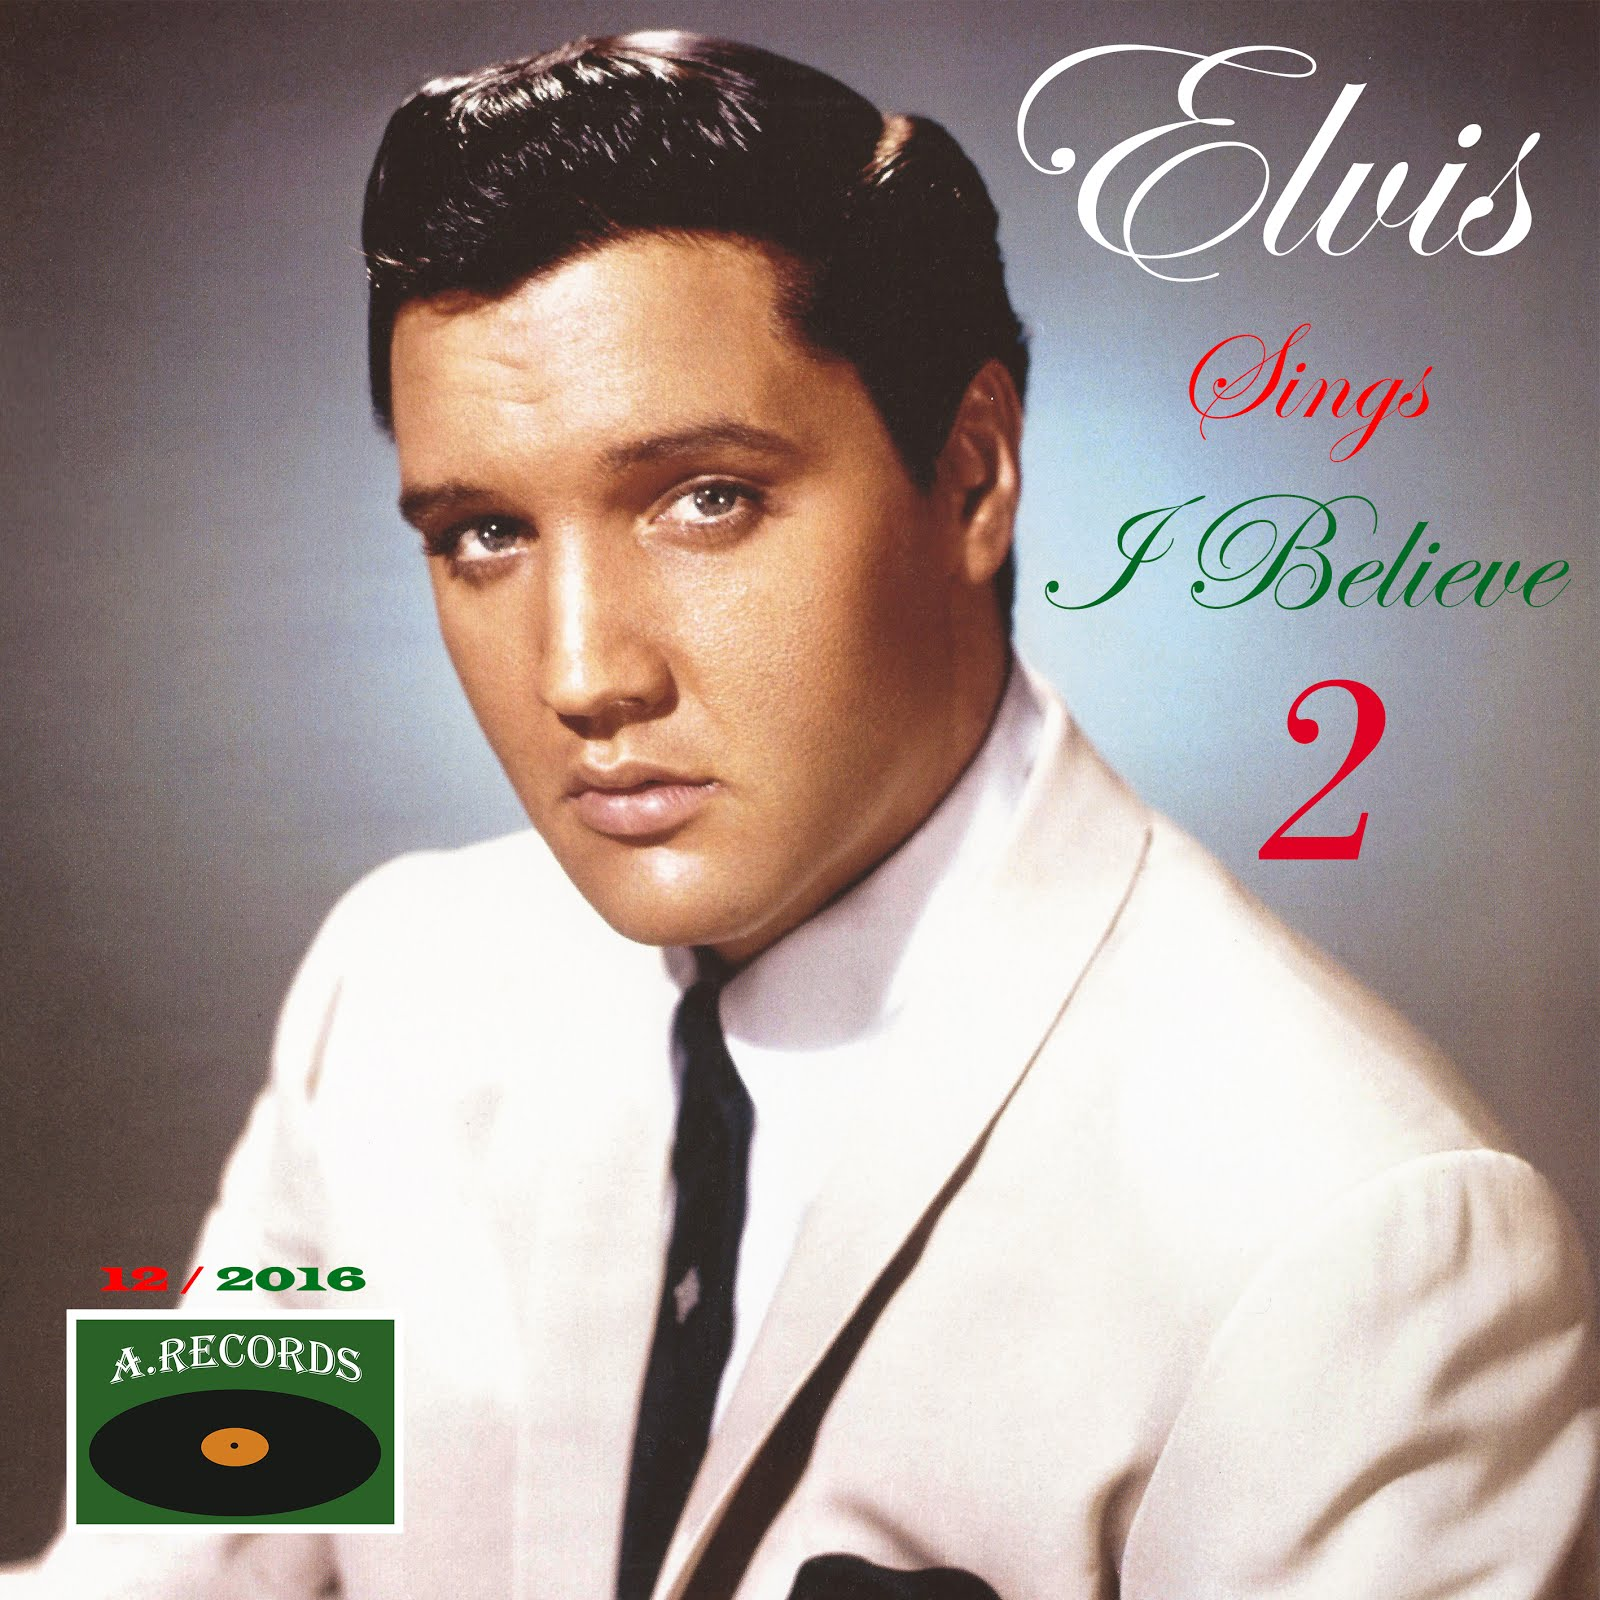 Elvis Sings I Believe - Volume 2 (December 2016)